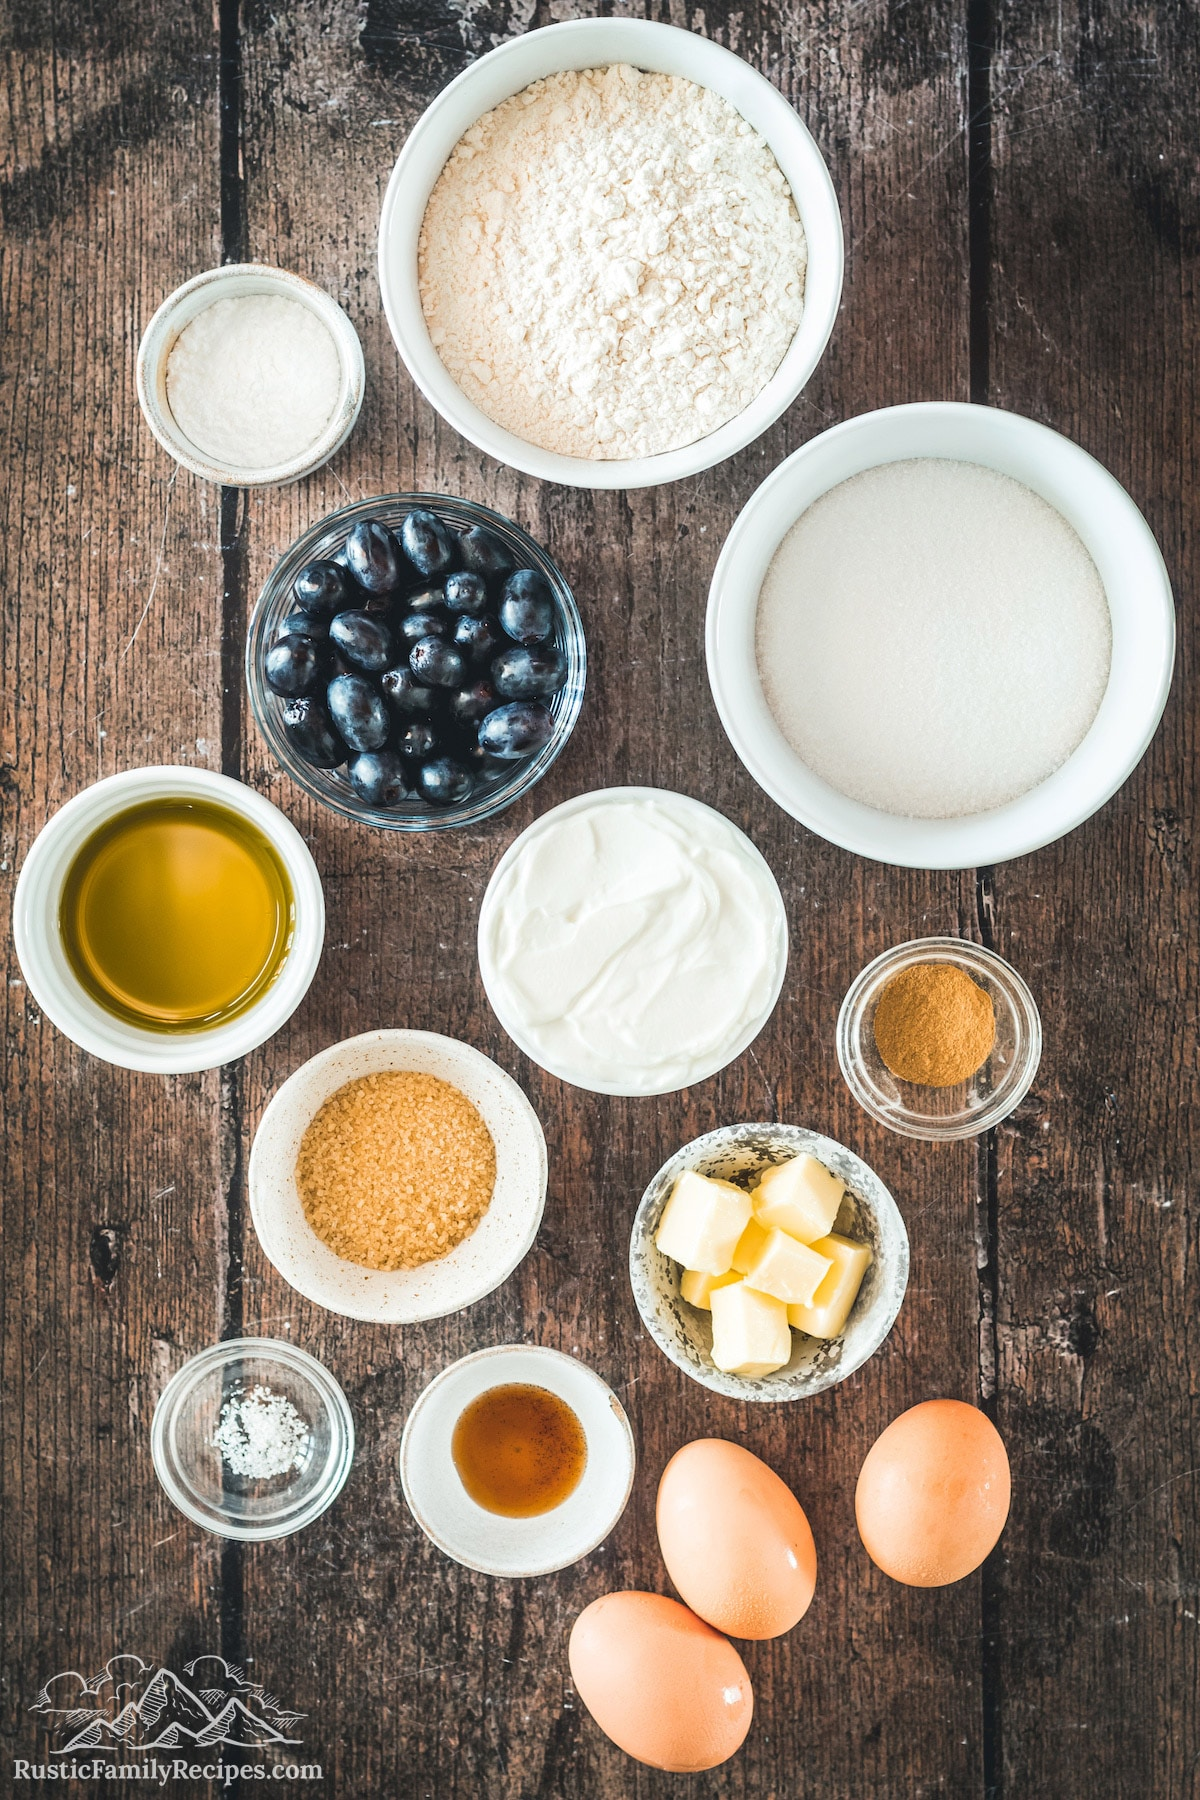 White bowls with cake ingredients